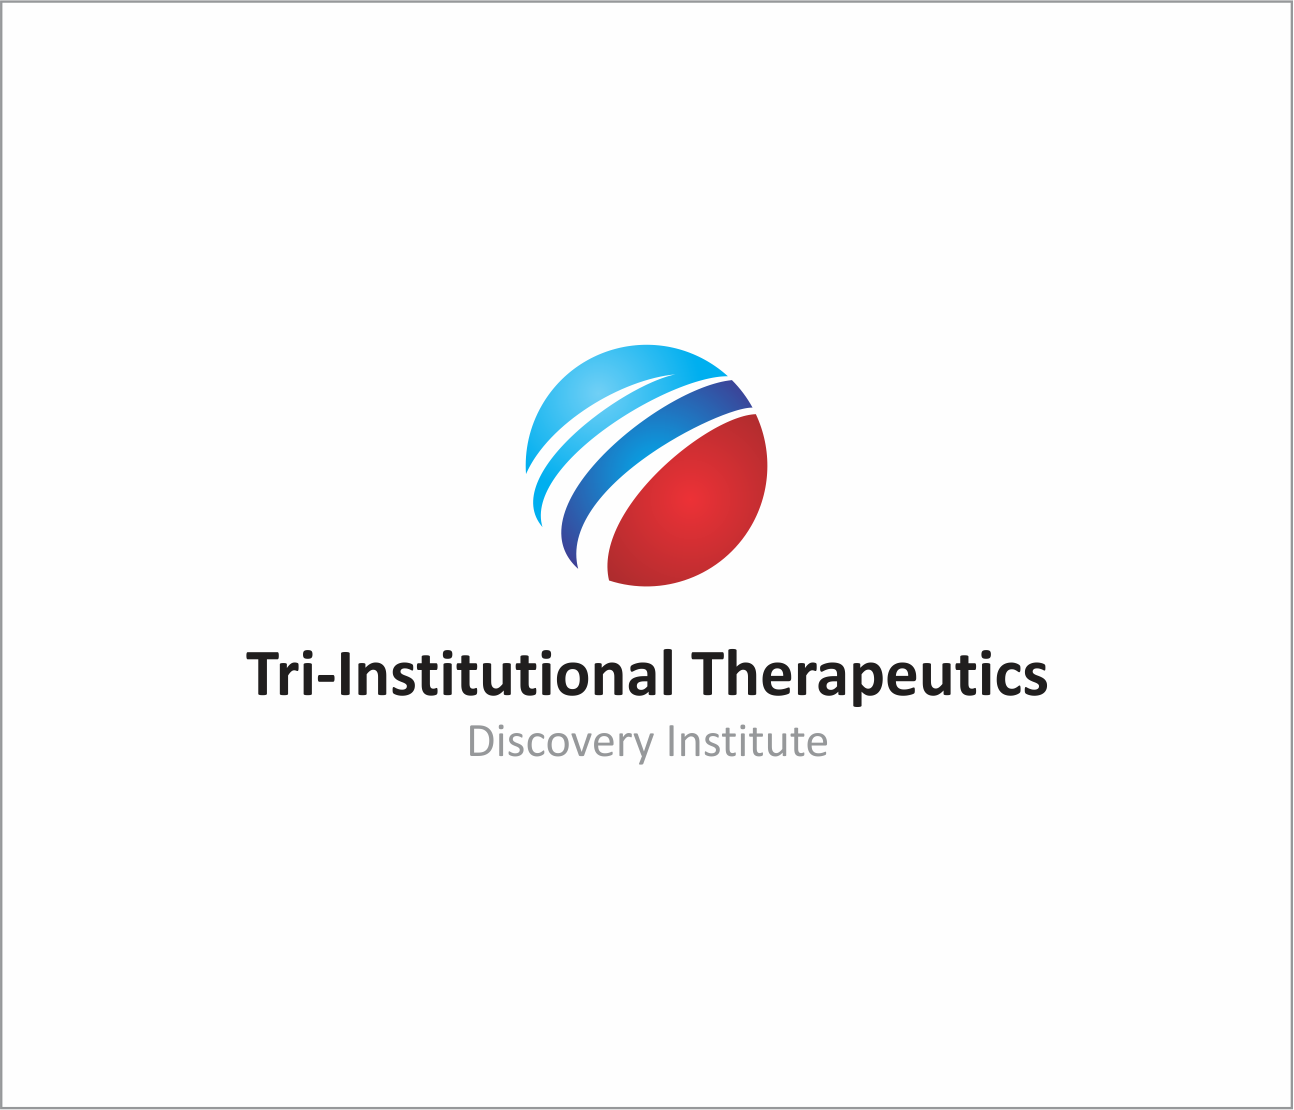 Logo Design by Armada Jamaluddin - Entry No. 103 in the Logo Design Contest Inspiring Logo Design for Tri-Institutional Therapeutics Discovery Institute.